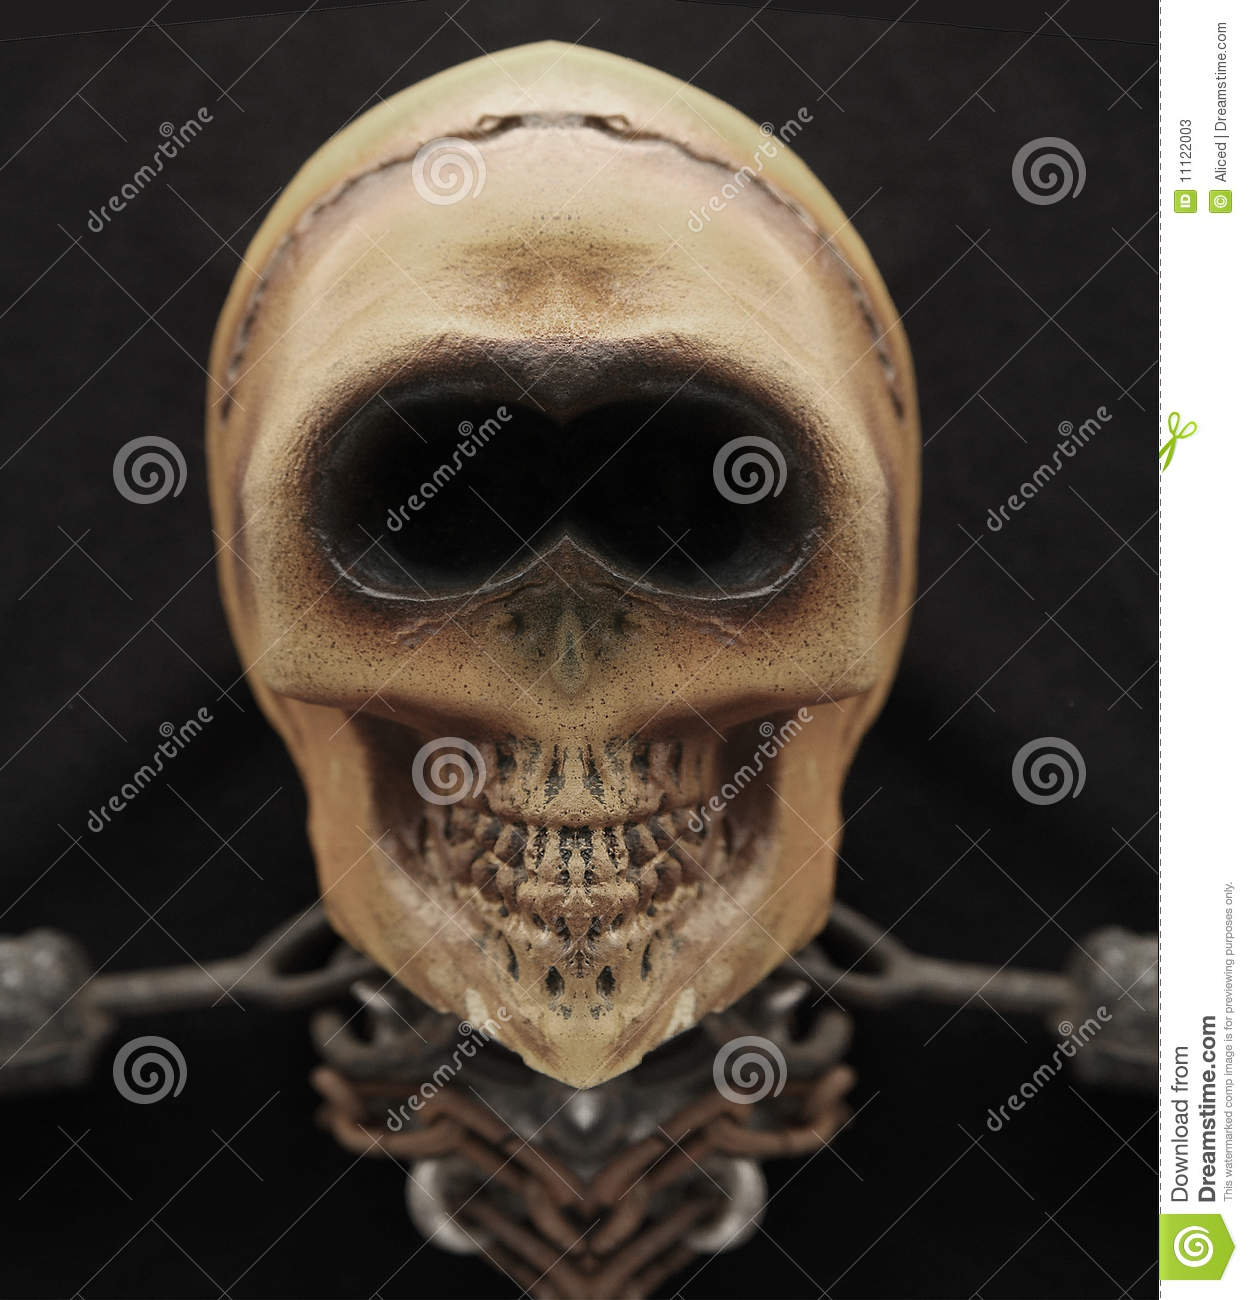 Grinning Skull Stock Photos - Image: 11122003: http://dreamstime.com/stock-photos-grinning-skull-image11122003